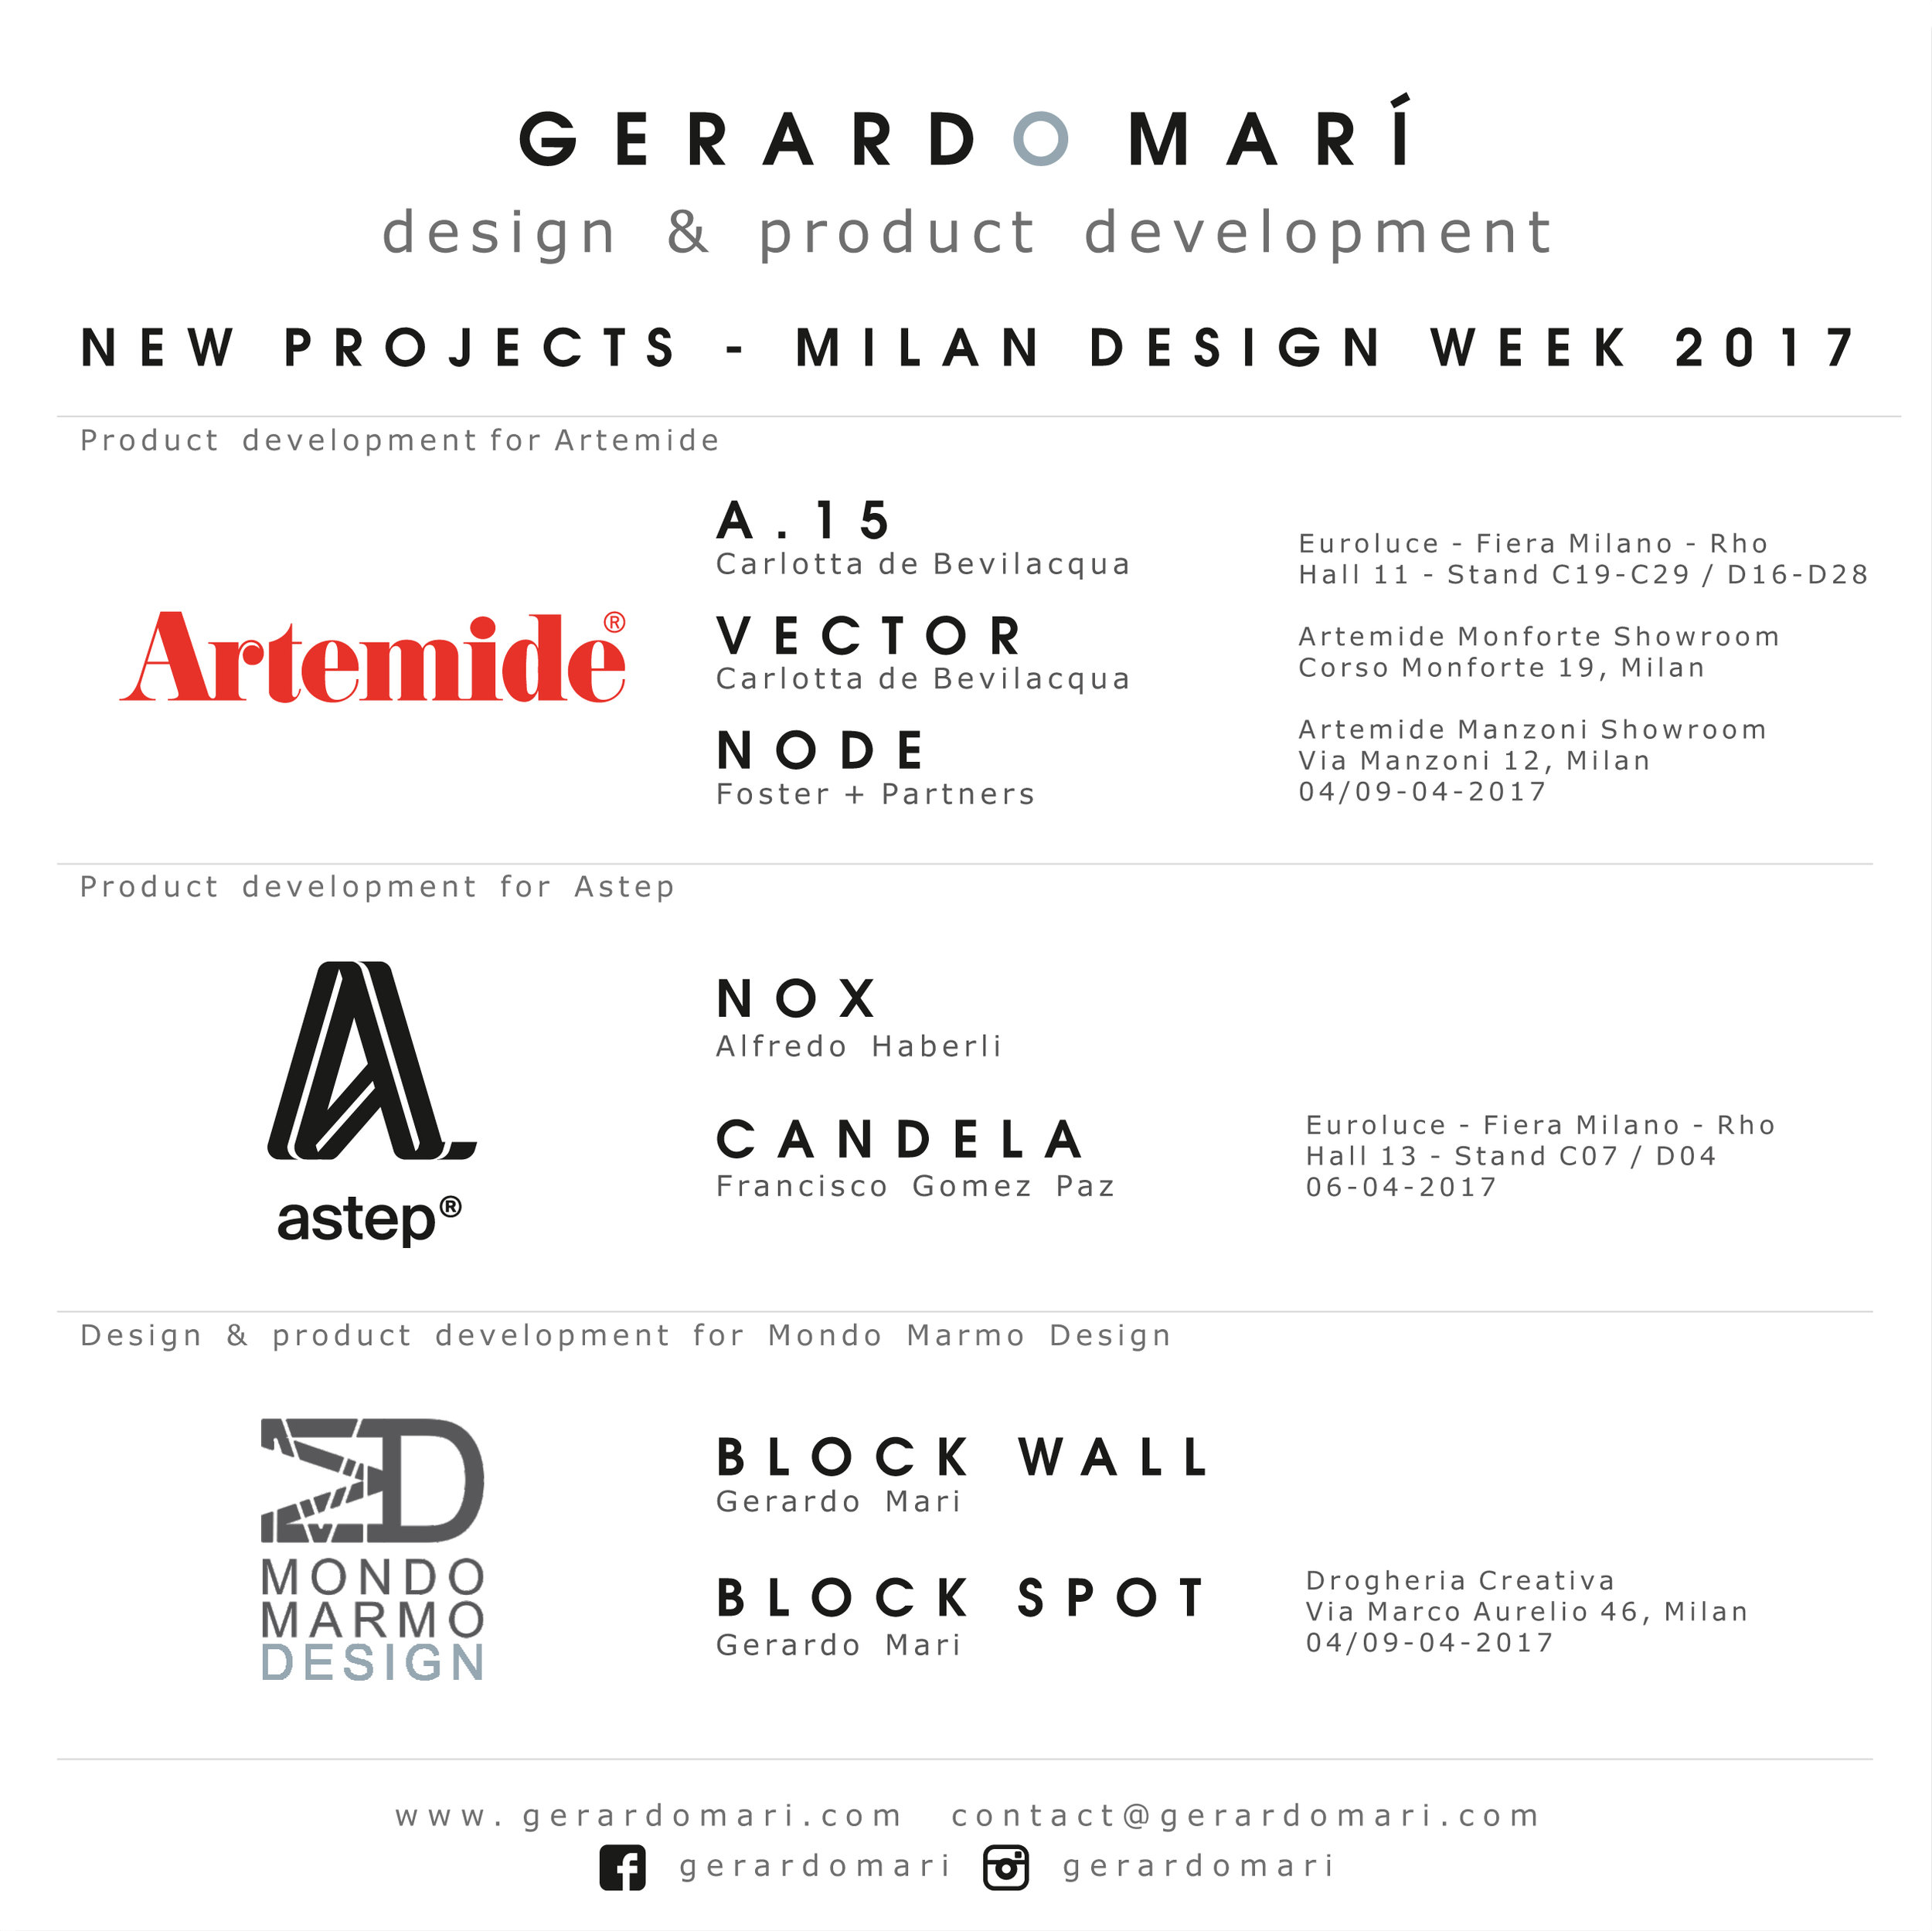 Gerardo_Mari_design_&_product_development_2017.jpg